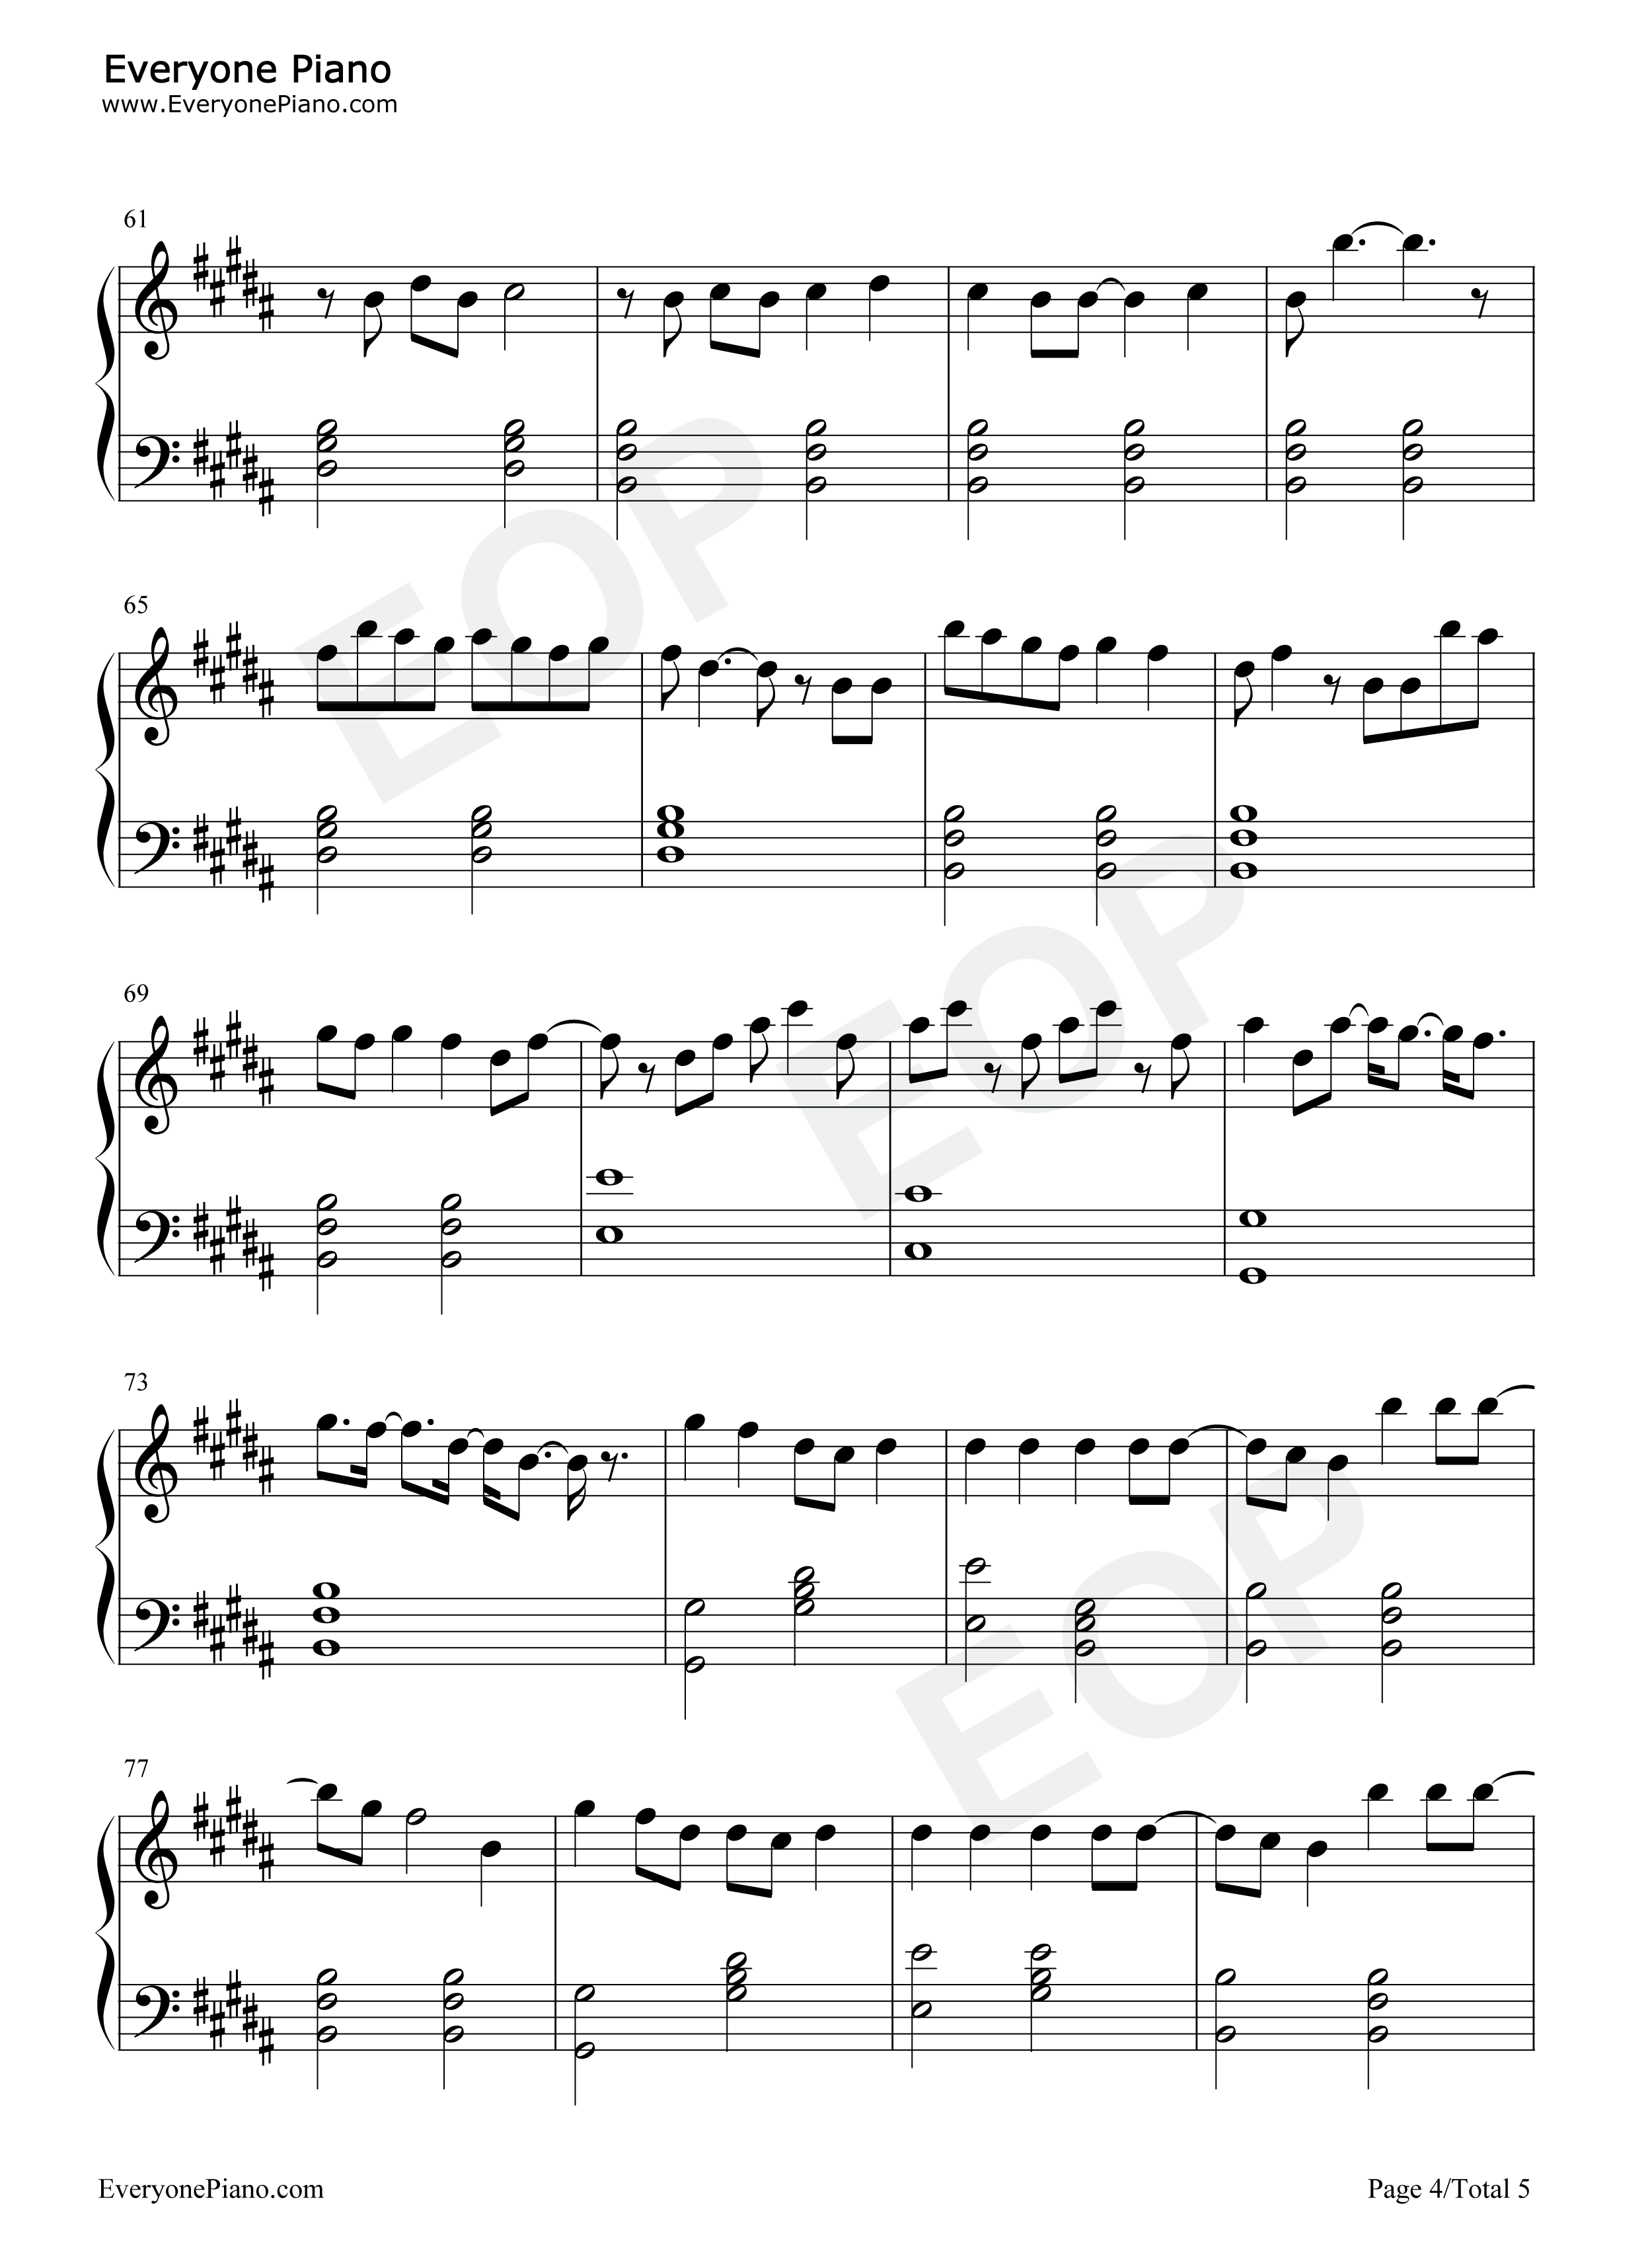 Hallelujah panic at the disco stave preview 4 free piano sheet listen now print sheet hallelujah panic at the disco stave preview 4 hexwebz Gallery